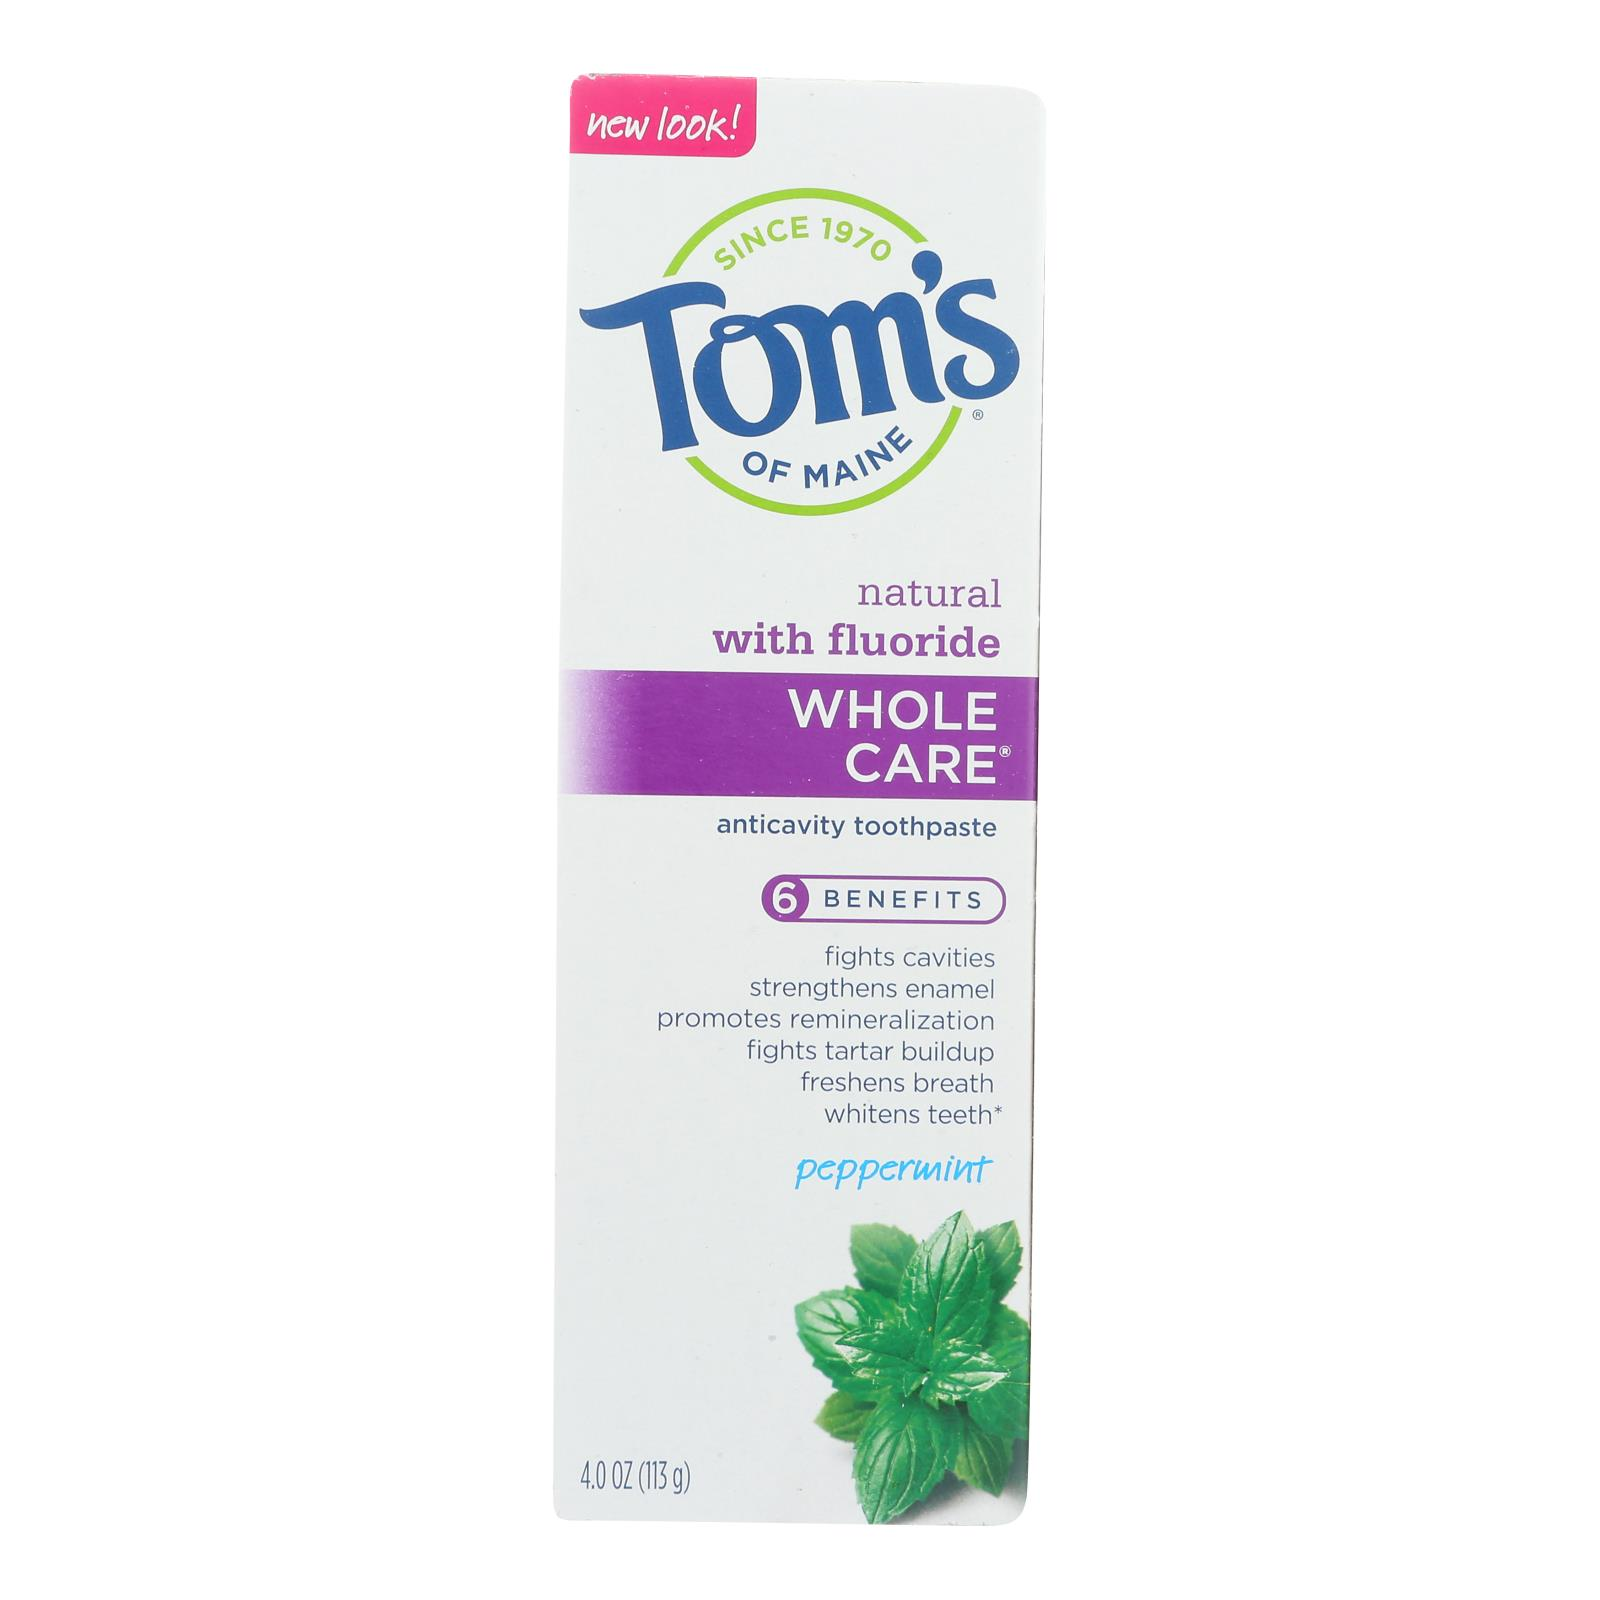 Tom's Of Maine - Tp Whole Care Ppmnt Fluor - Case of 6 - 4 OZ